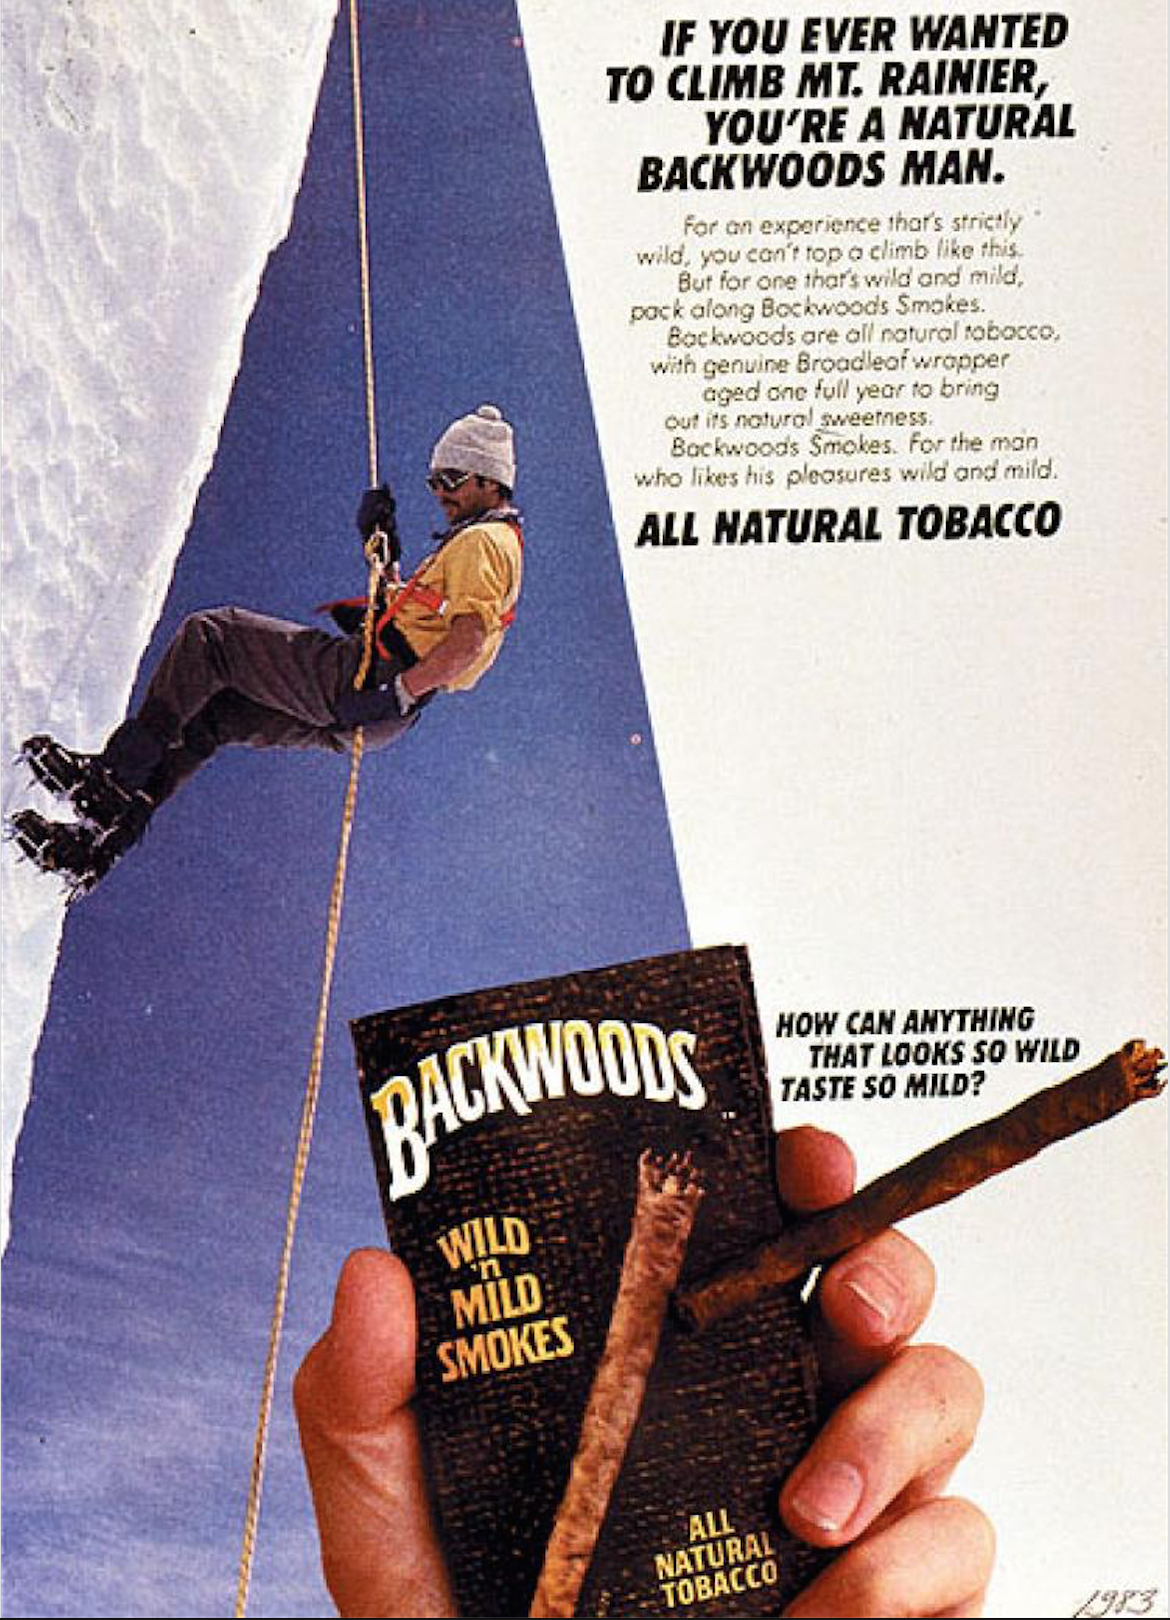 Backwoods Smokes AD from 1983